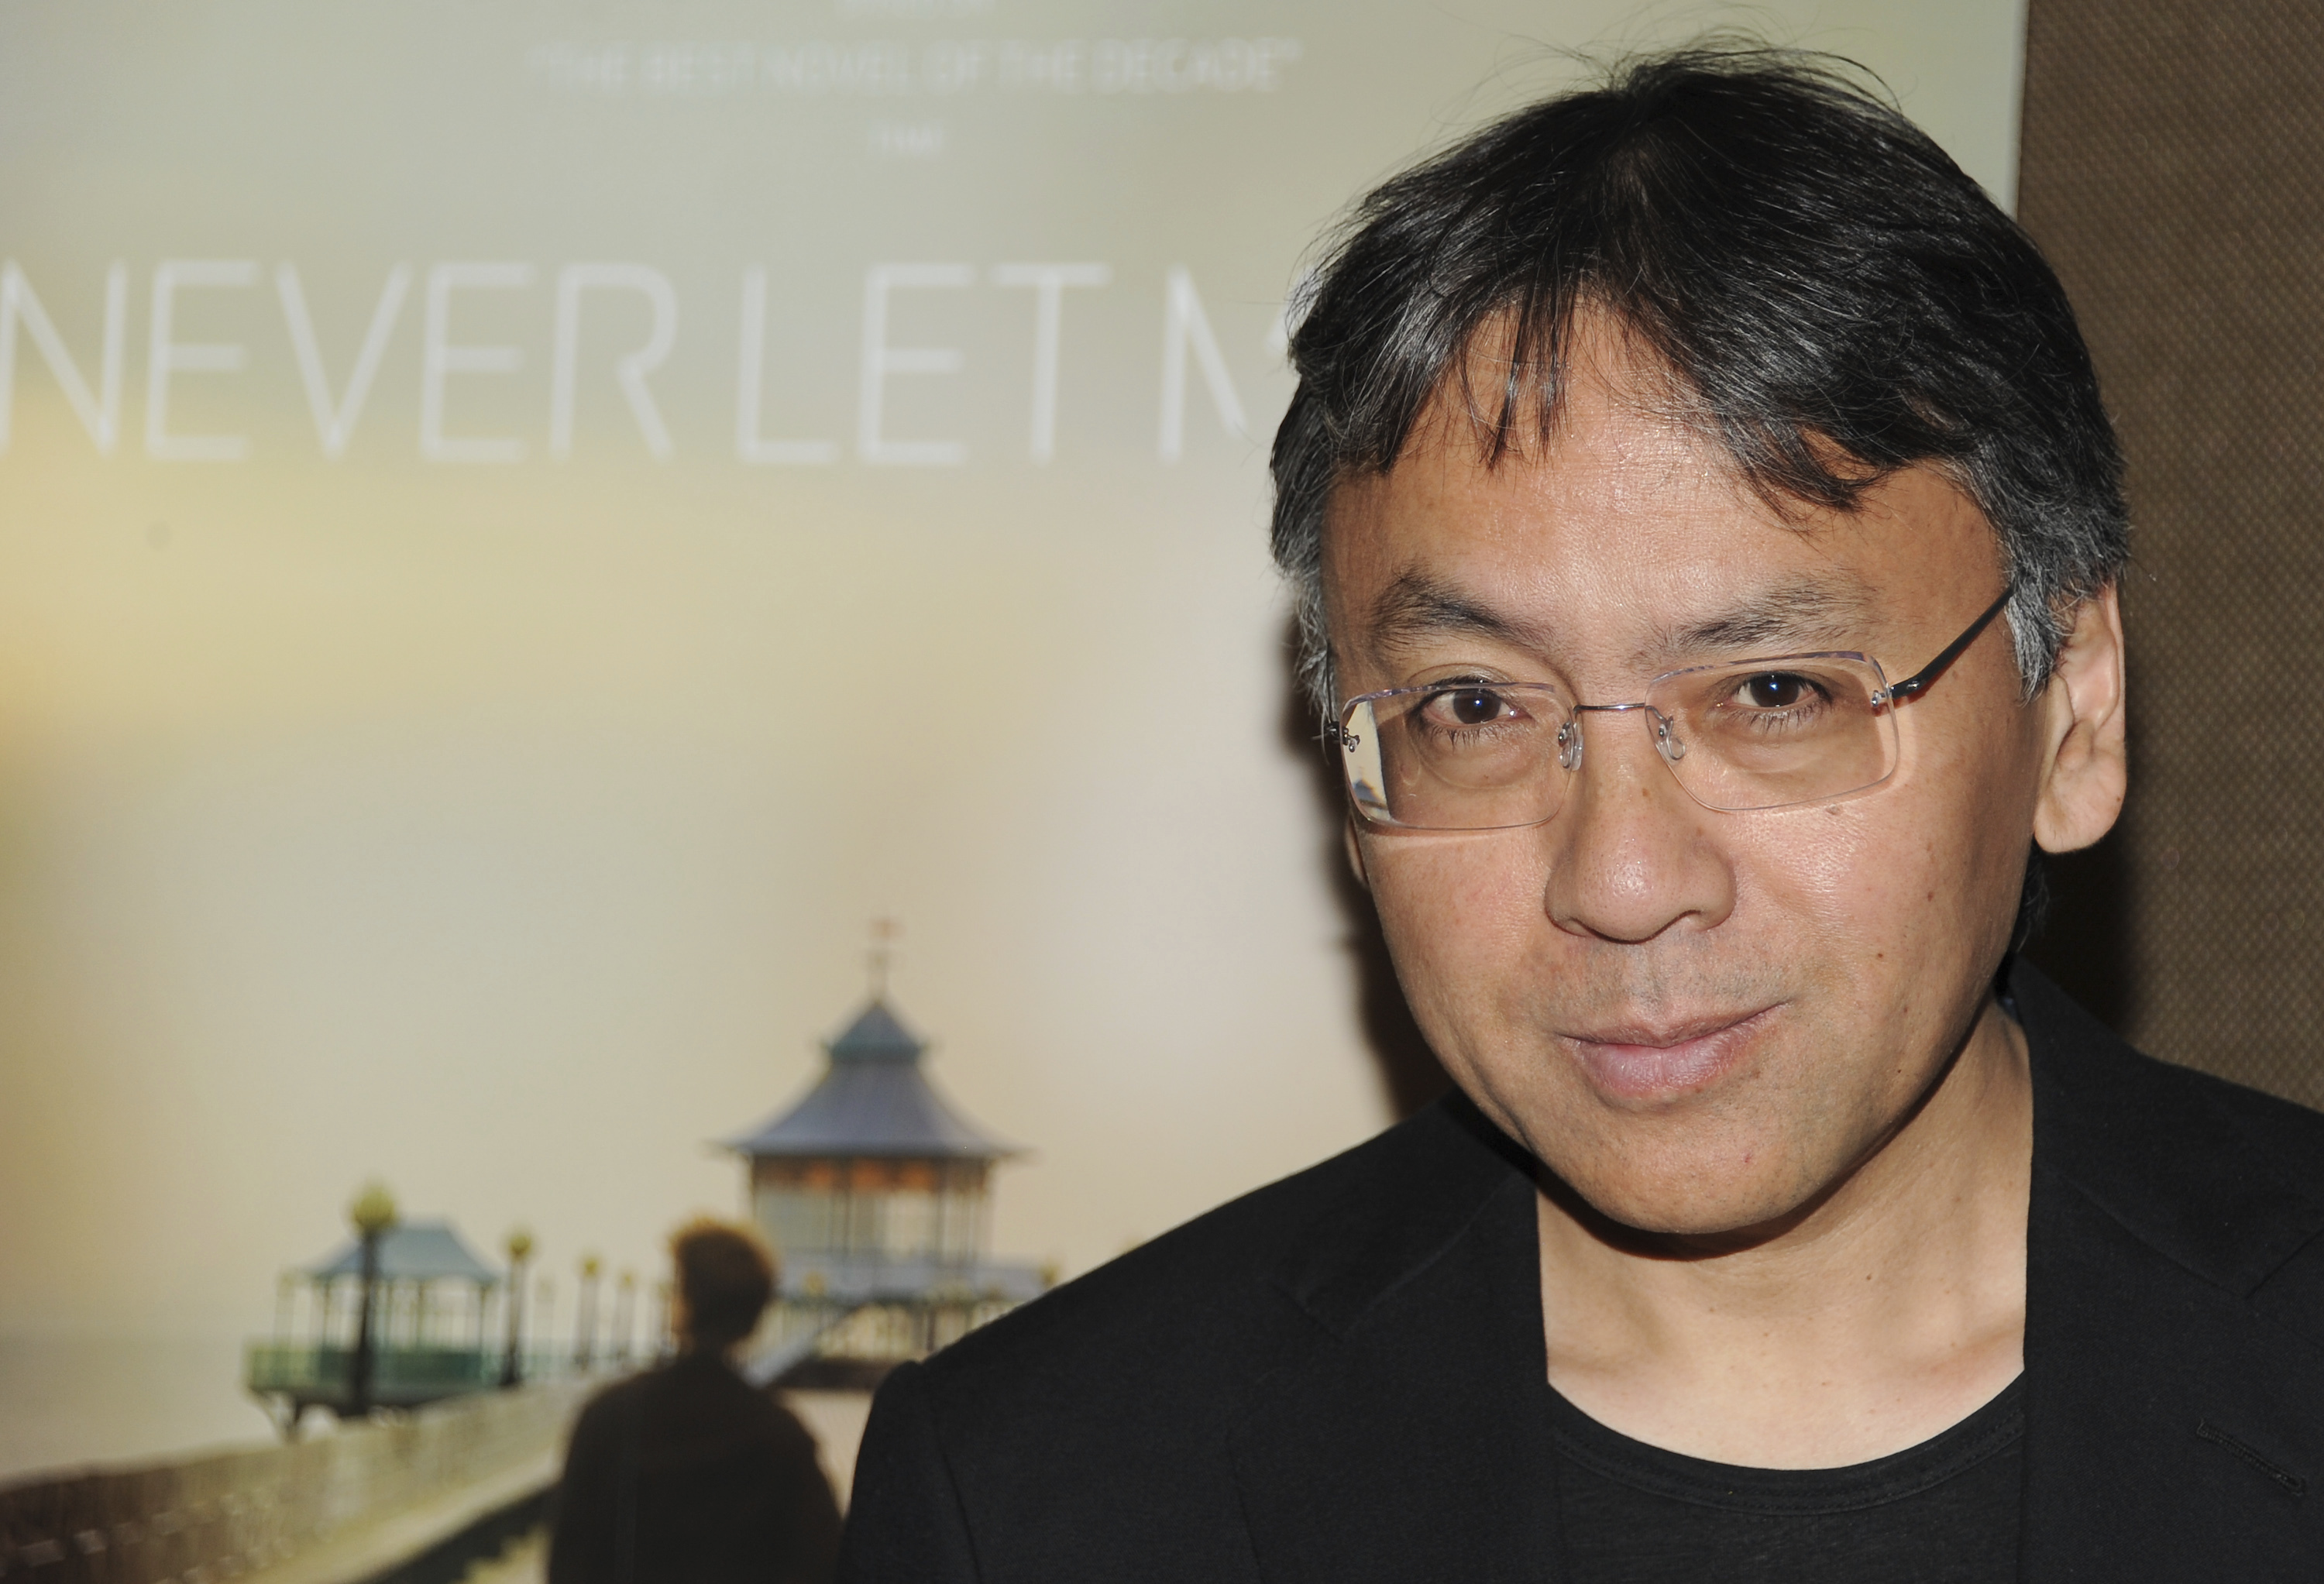 FILE - In this Tuesday, Sept. 14, 2010 file photo, author Kazuo Ishiguro attends a special screening of 'Never Let Me Go' in New York. The Nobel Prize for Literature for 2017 has been awarded to British novelist Kazuo Ishiguro, it was announced on Thursday, Oct. 5, 2017. (AP Photo/Evan Agostini, File)